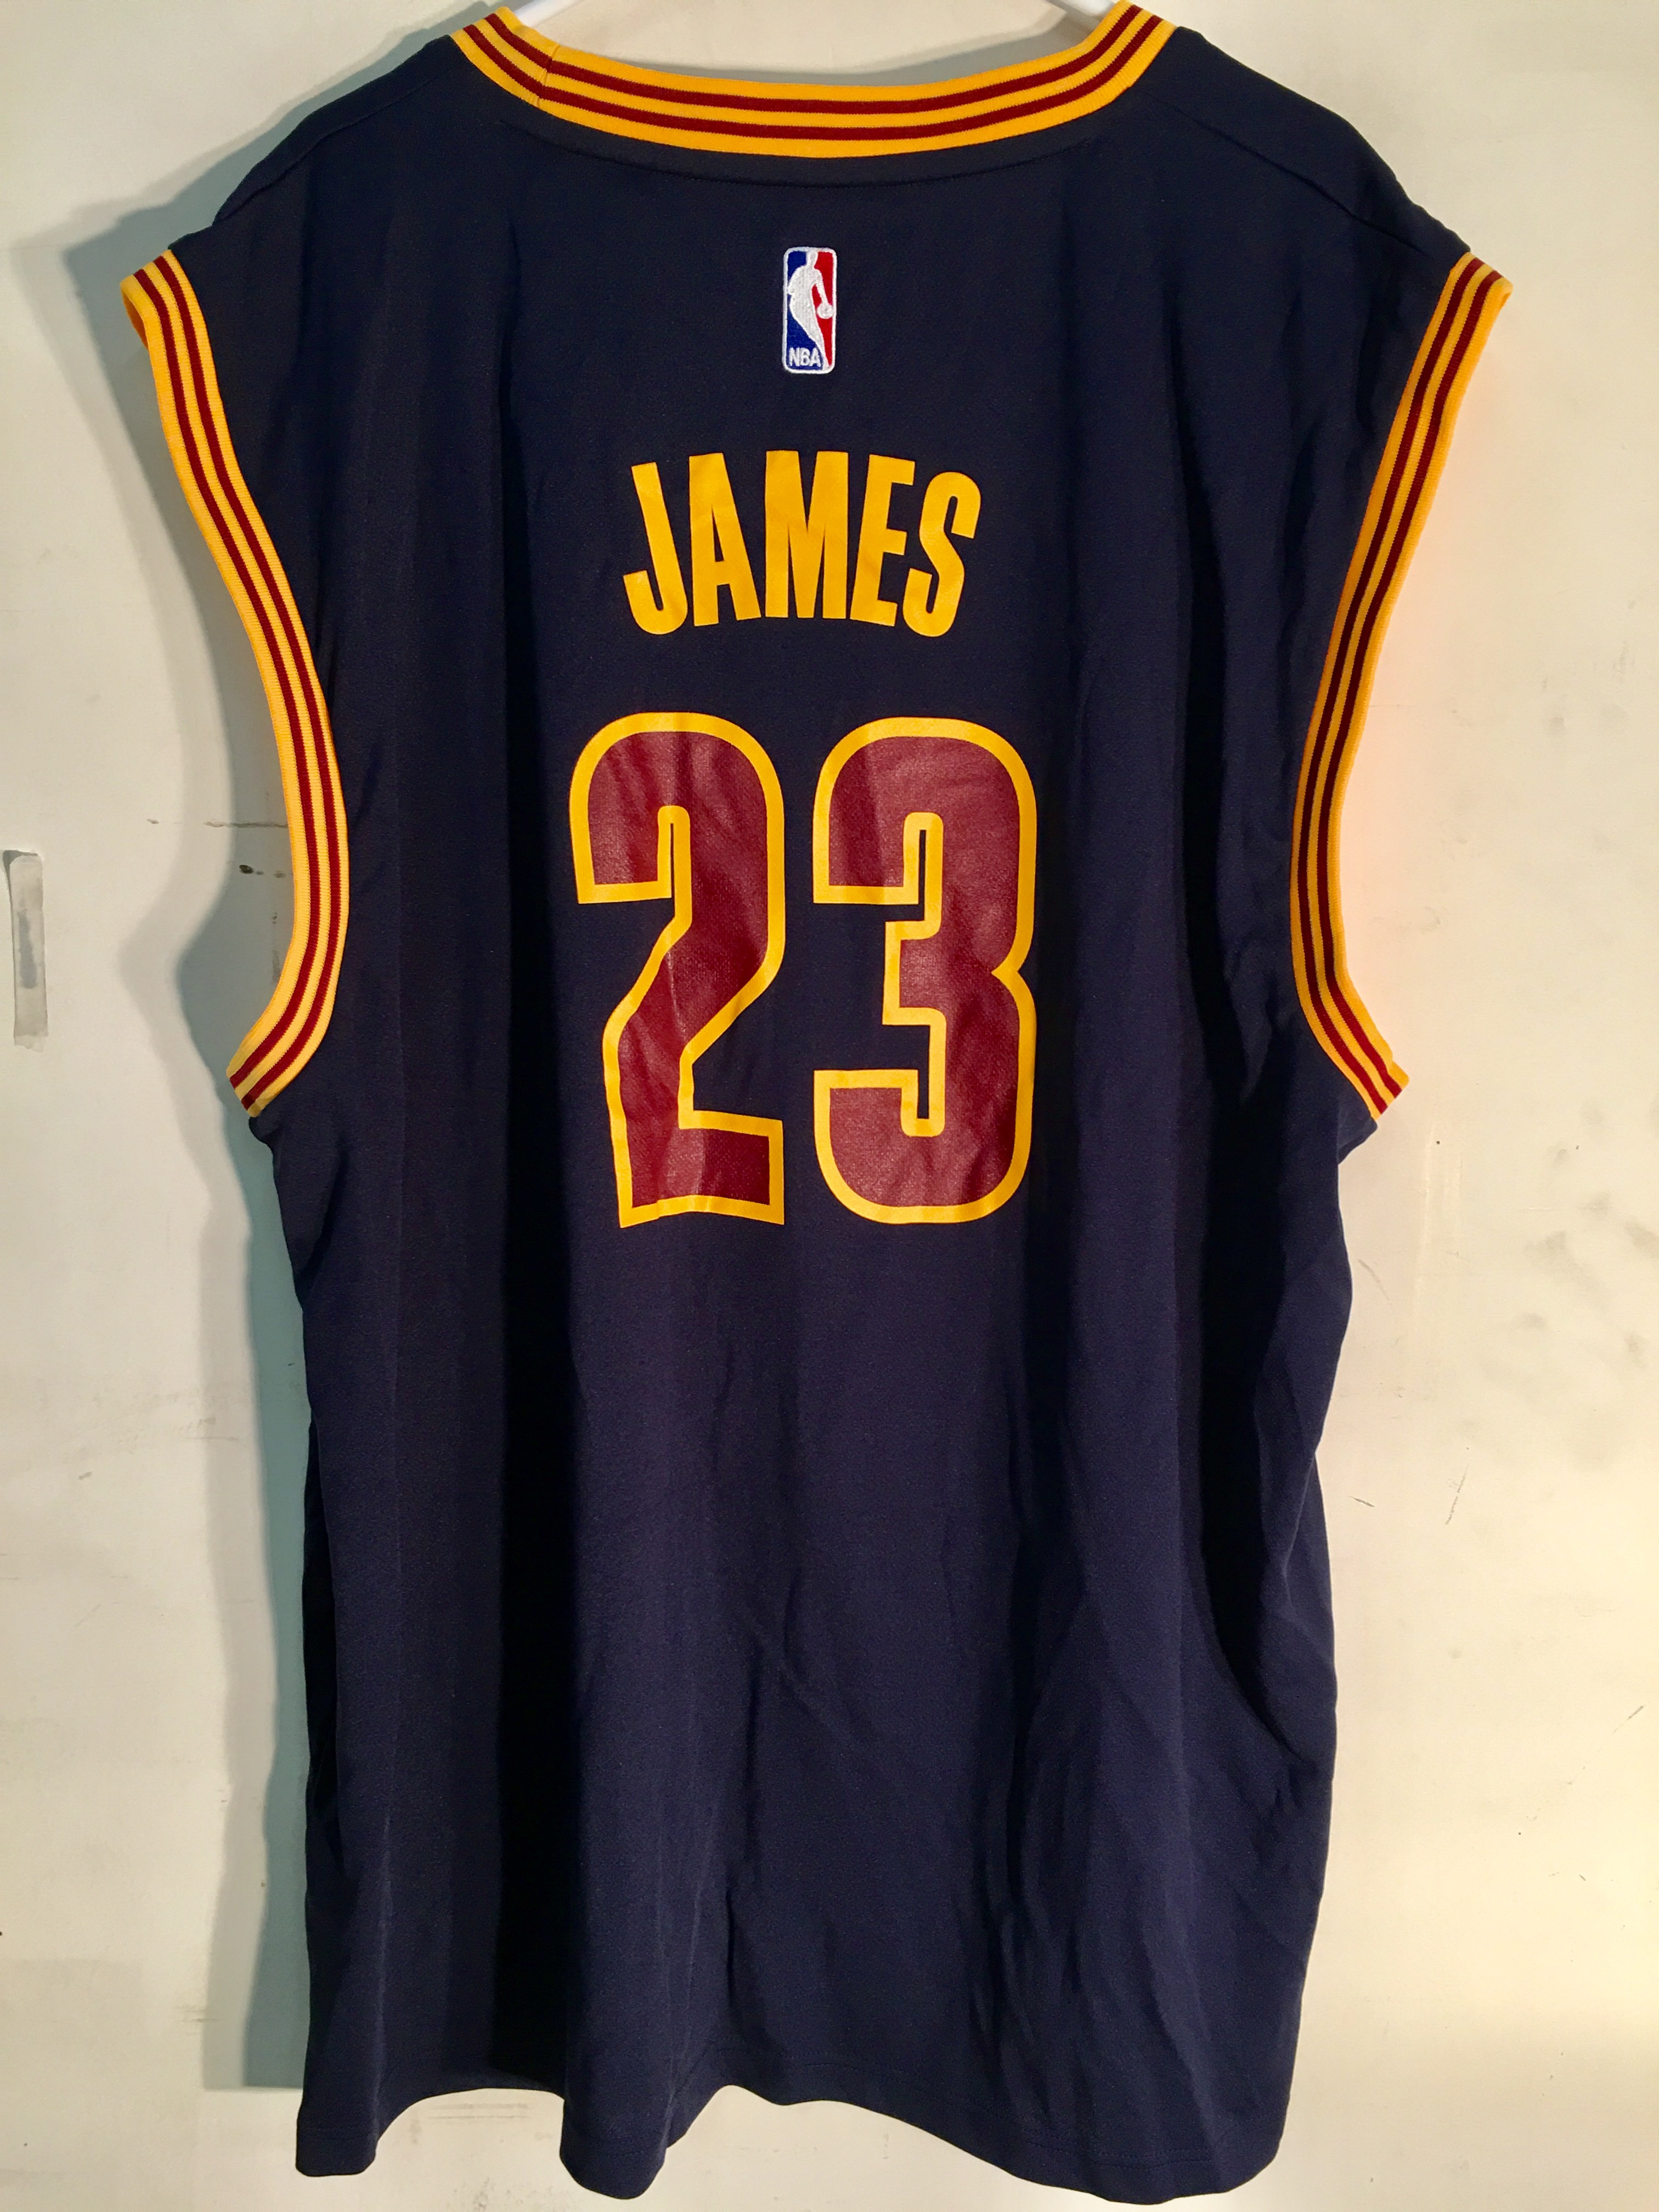 buy online dee5e 3bc7b Details about Adidas NBA Jersey Cleveland Cavaliers LeBron James Navy sz 3X